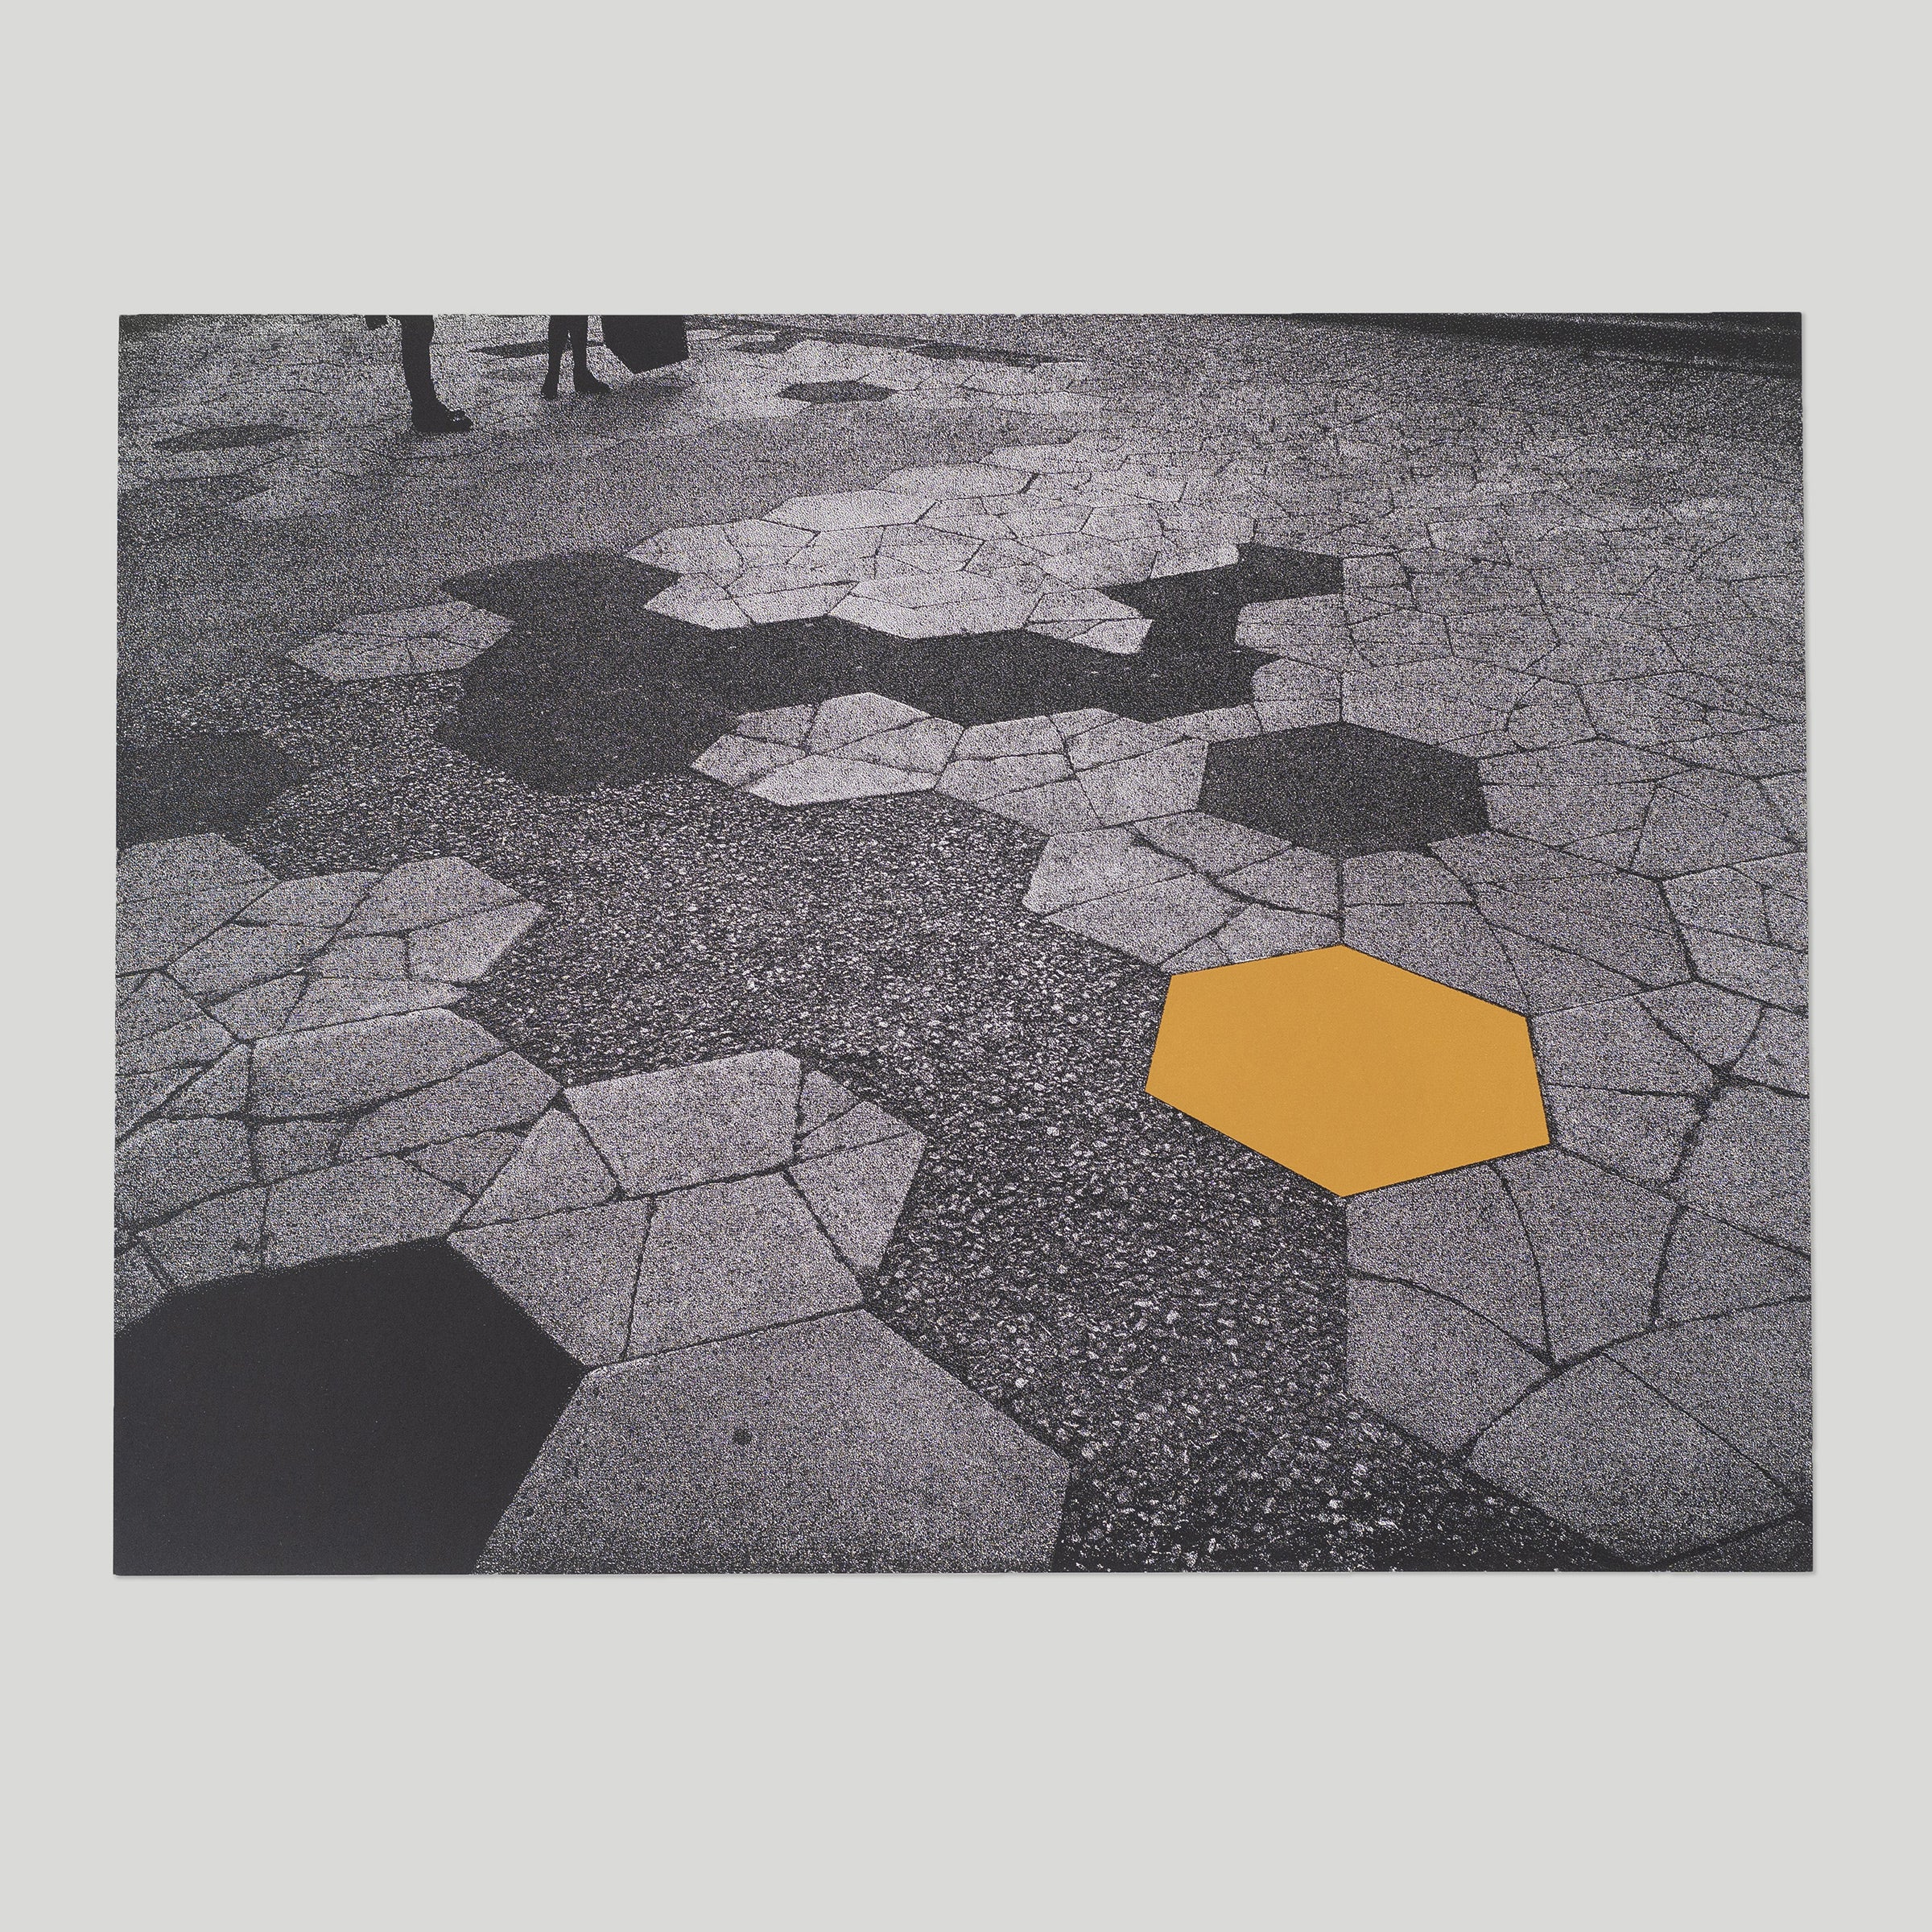 Natalie Finnemore: Untitled (pavement) — The Tetley Shop